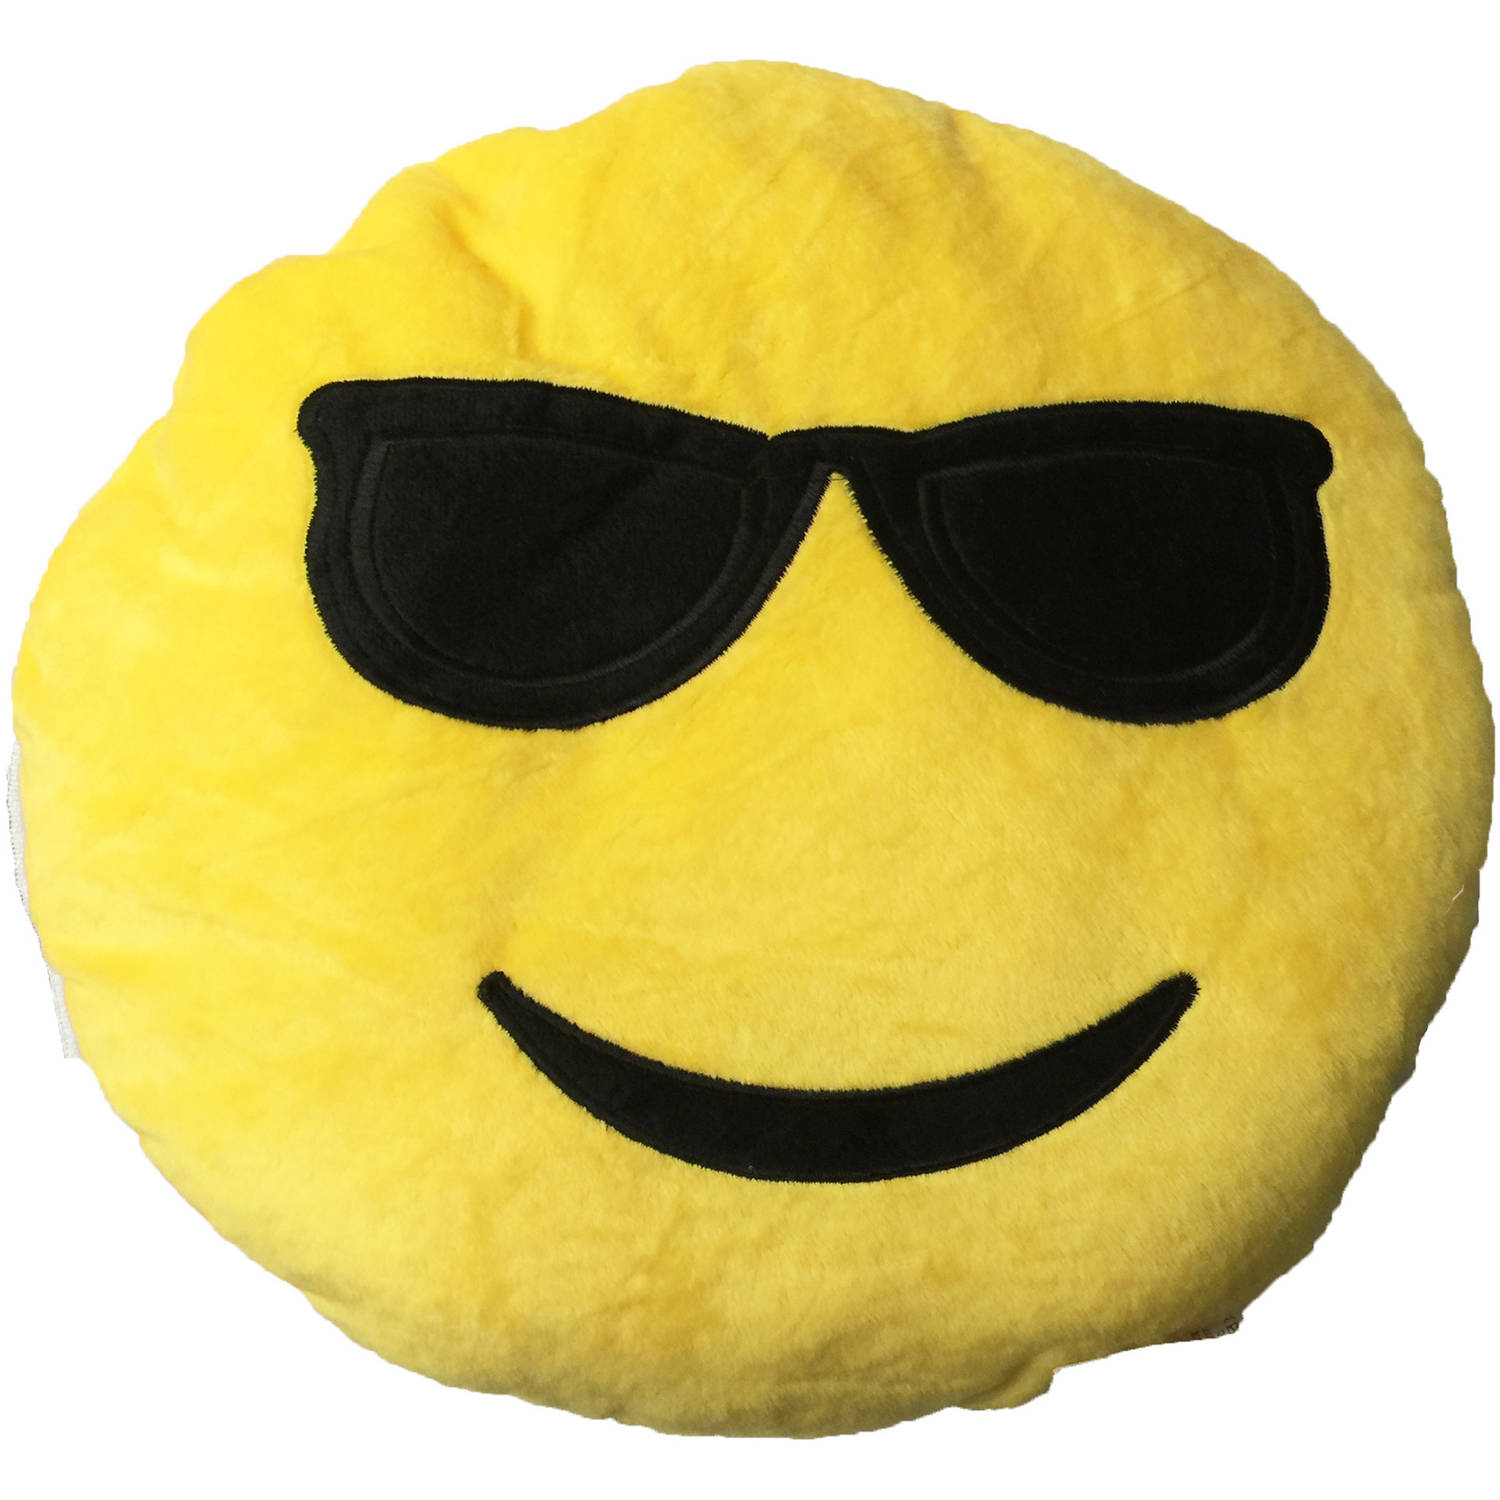 Smily Face with Cool Sunglasses Emoji Cushion